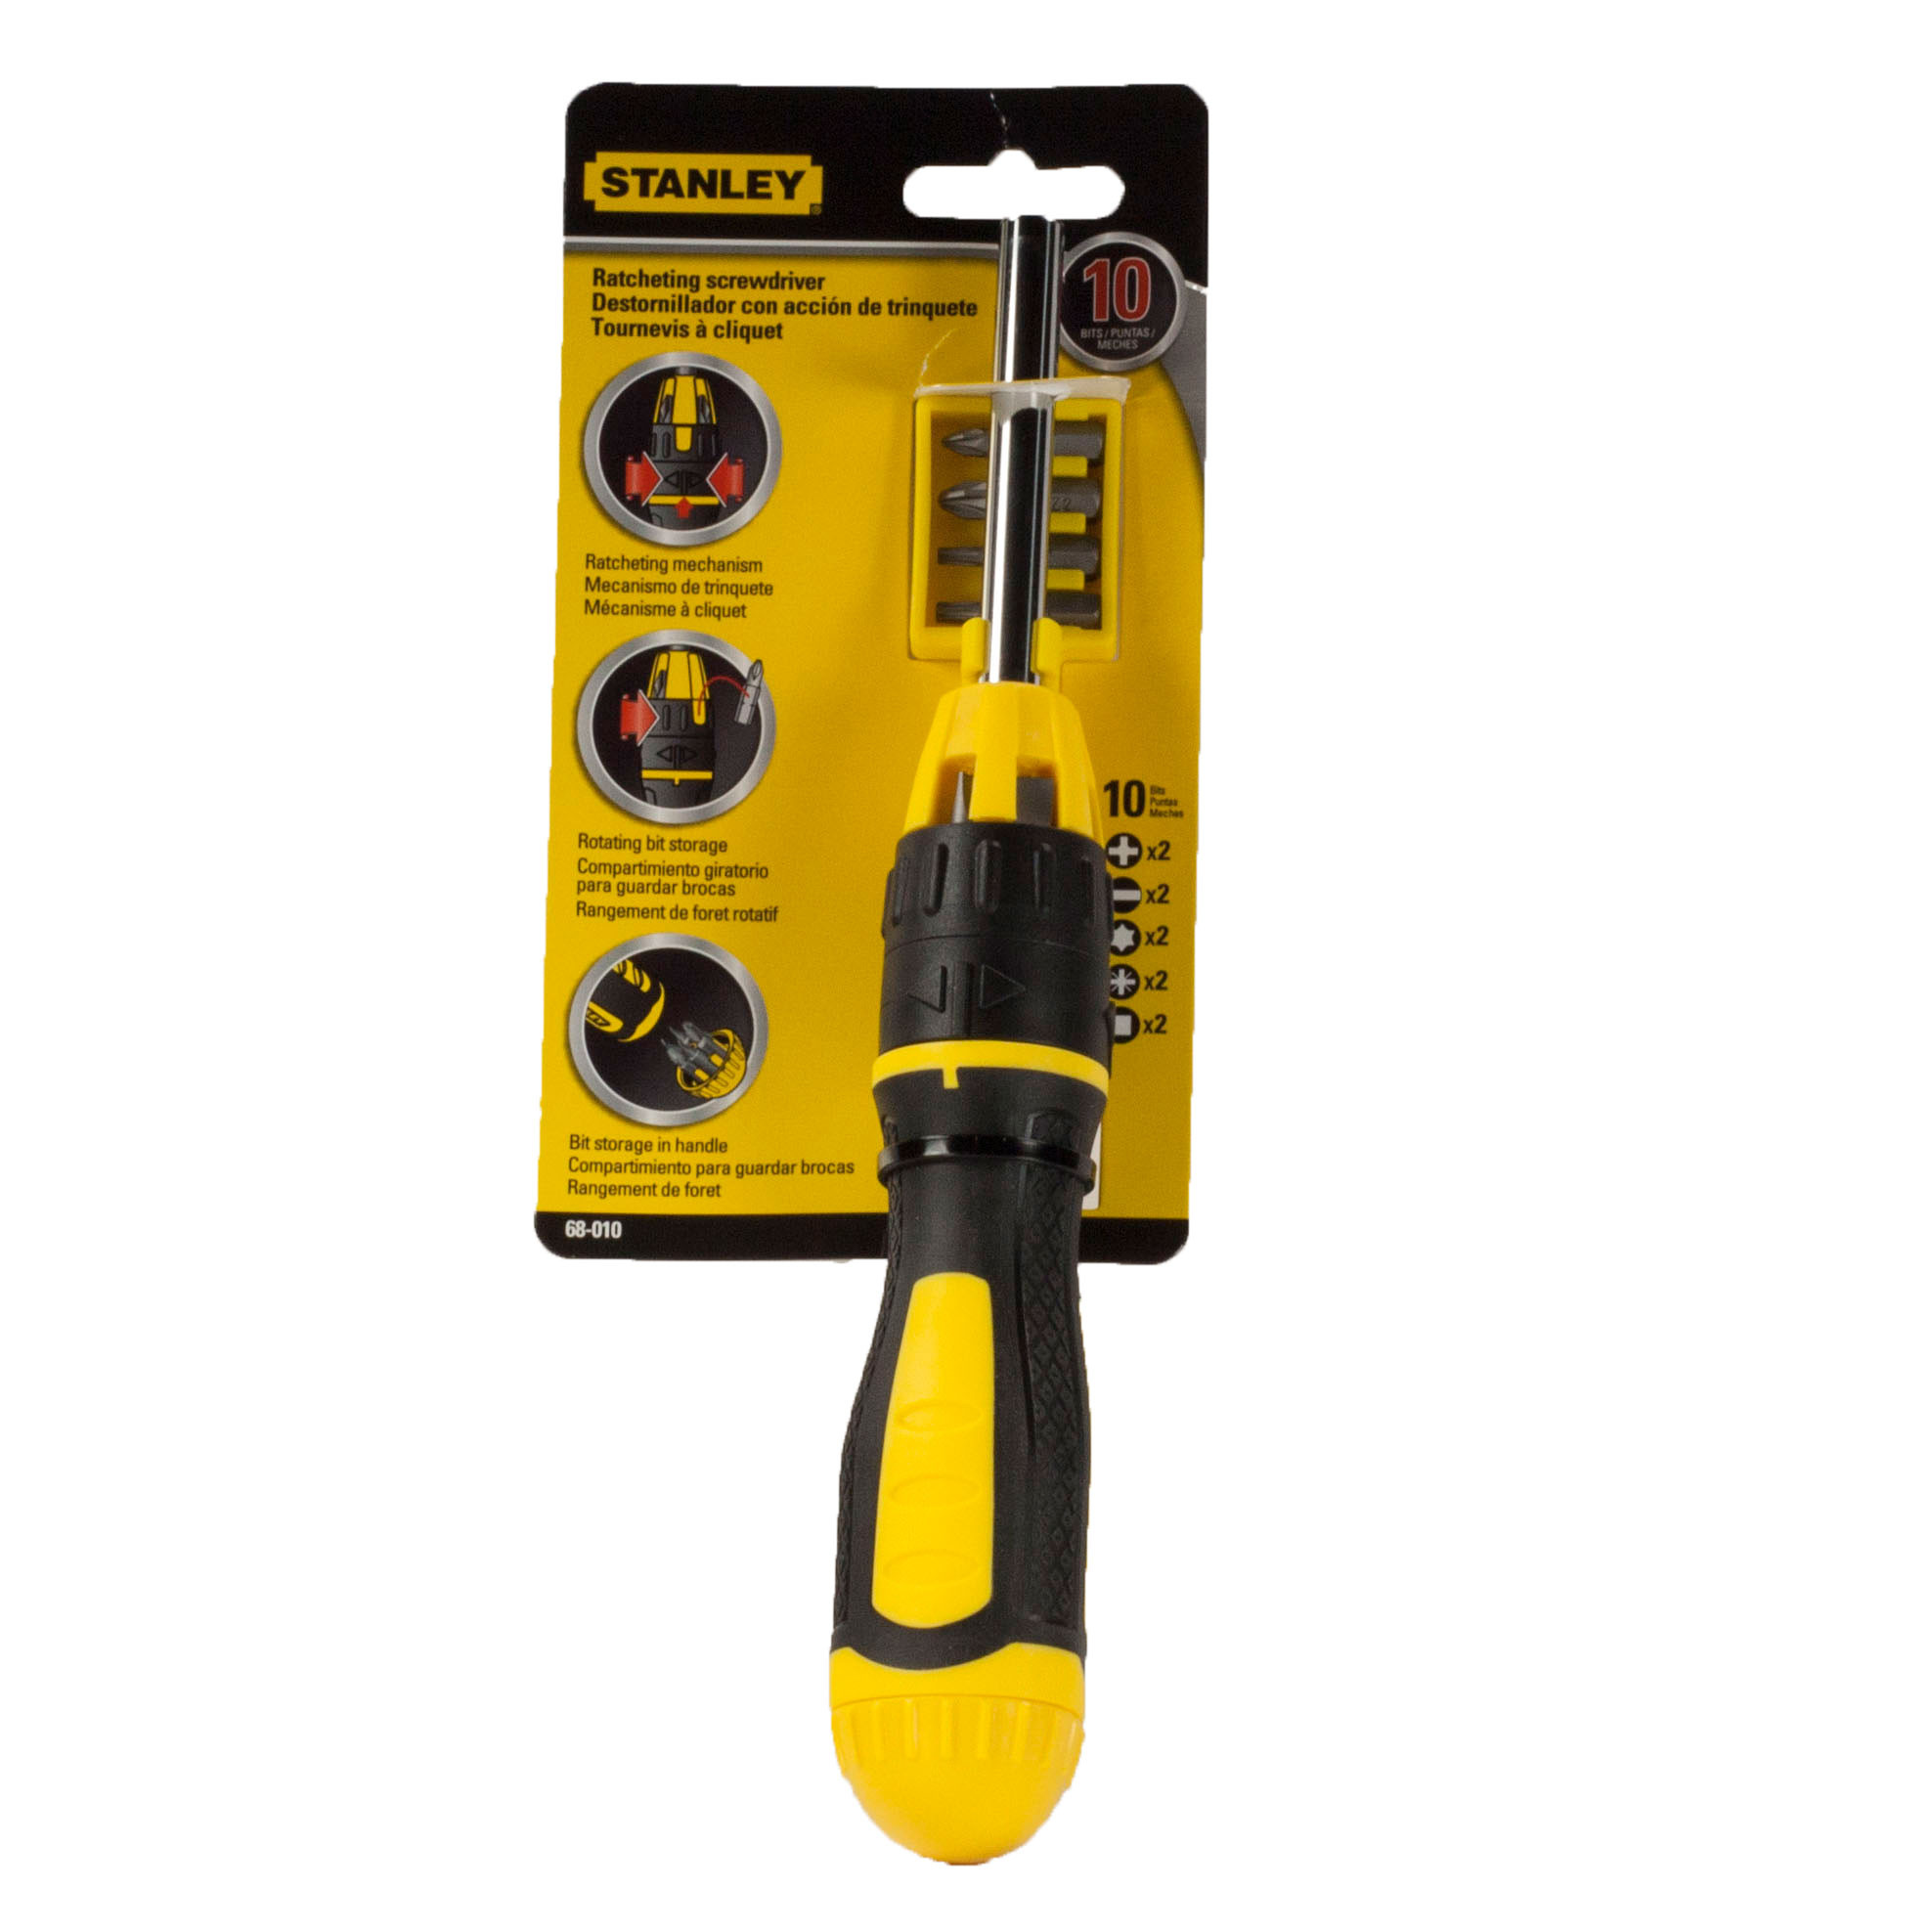 Stanley 68-010 3 in Multi-Bit Ratcheting Screwdriver